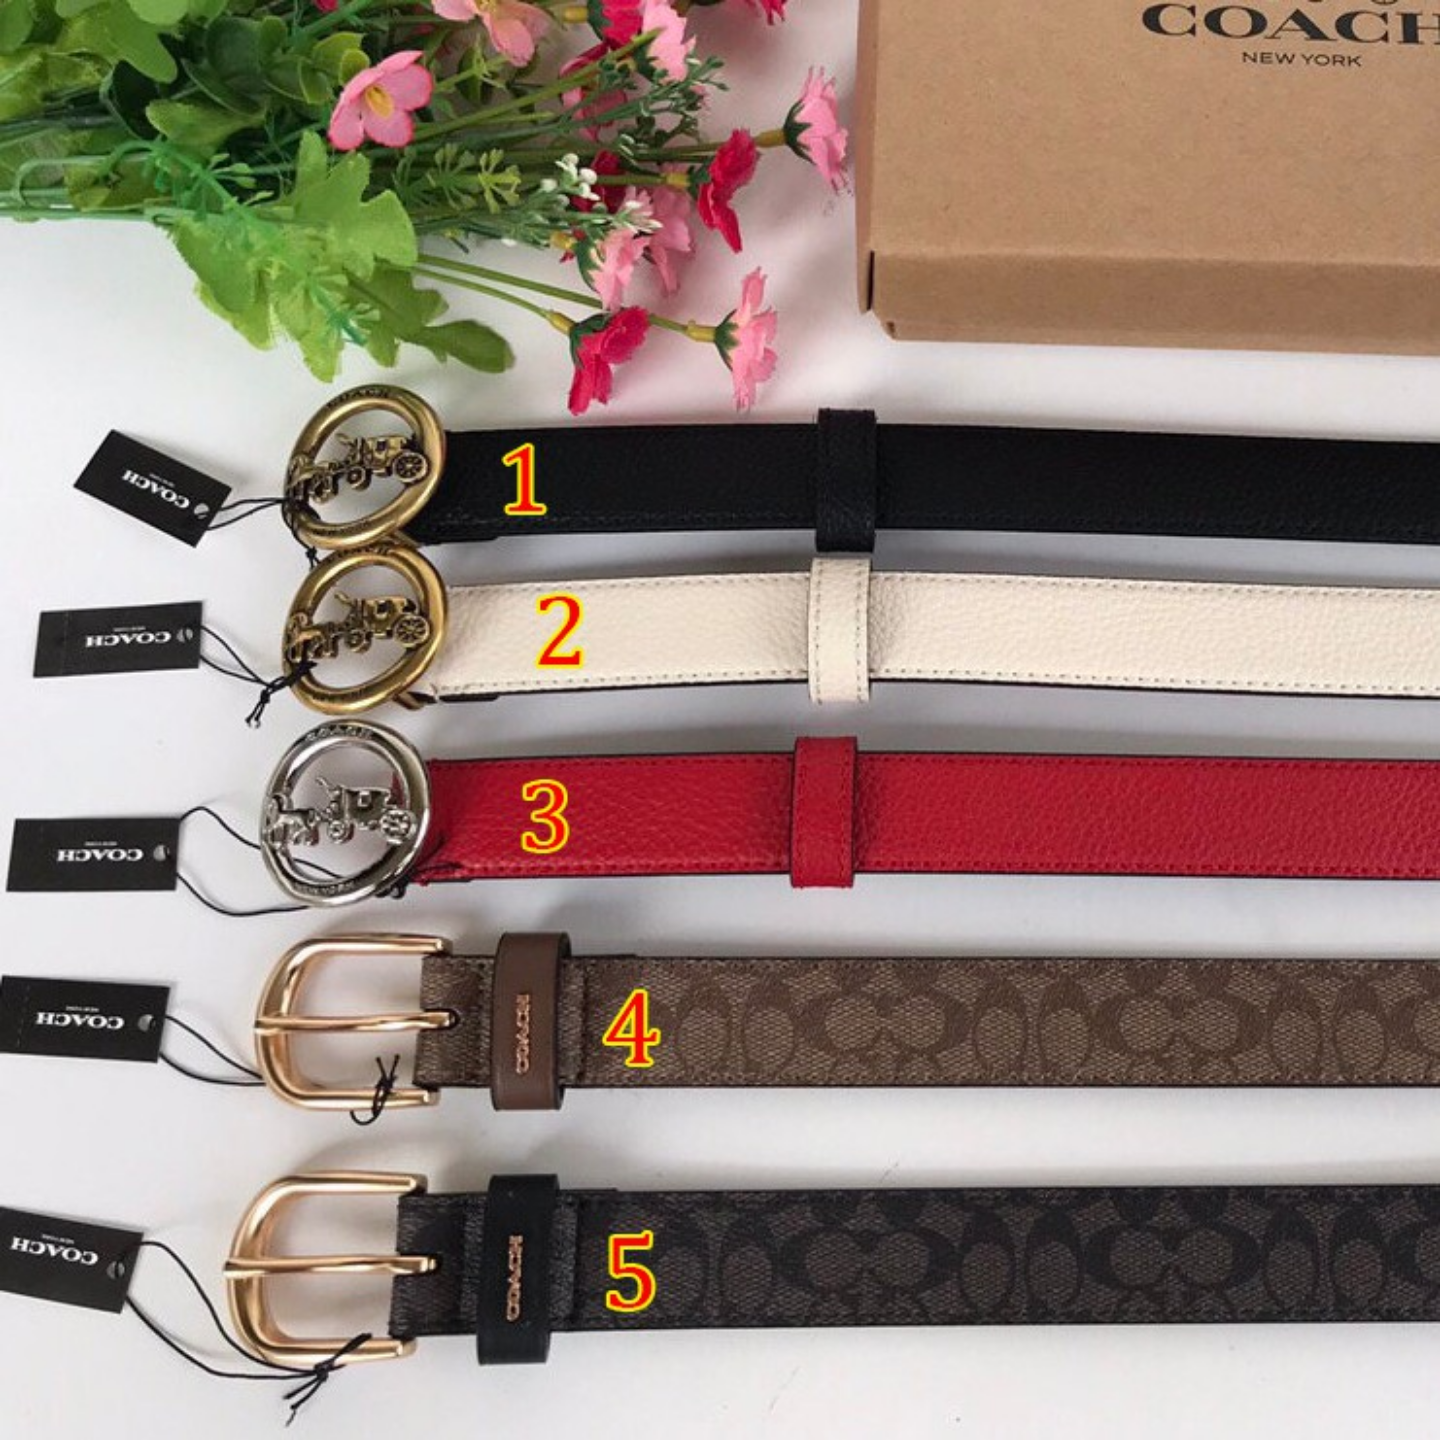 (SG COD) Ladies  Coach  belt F78181 accessories belt belt leisure belt